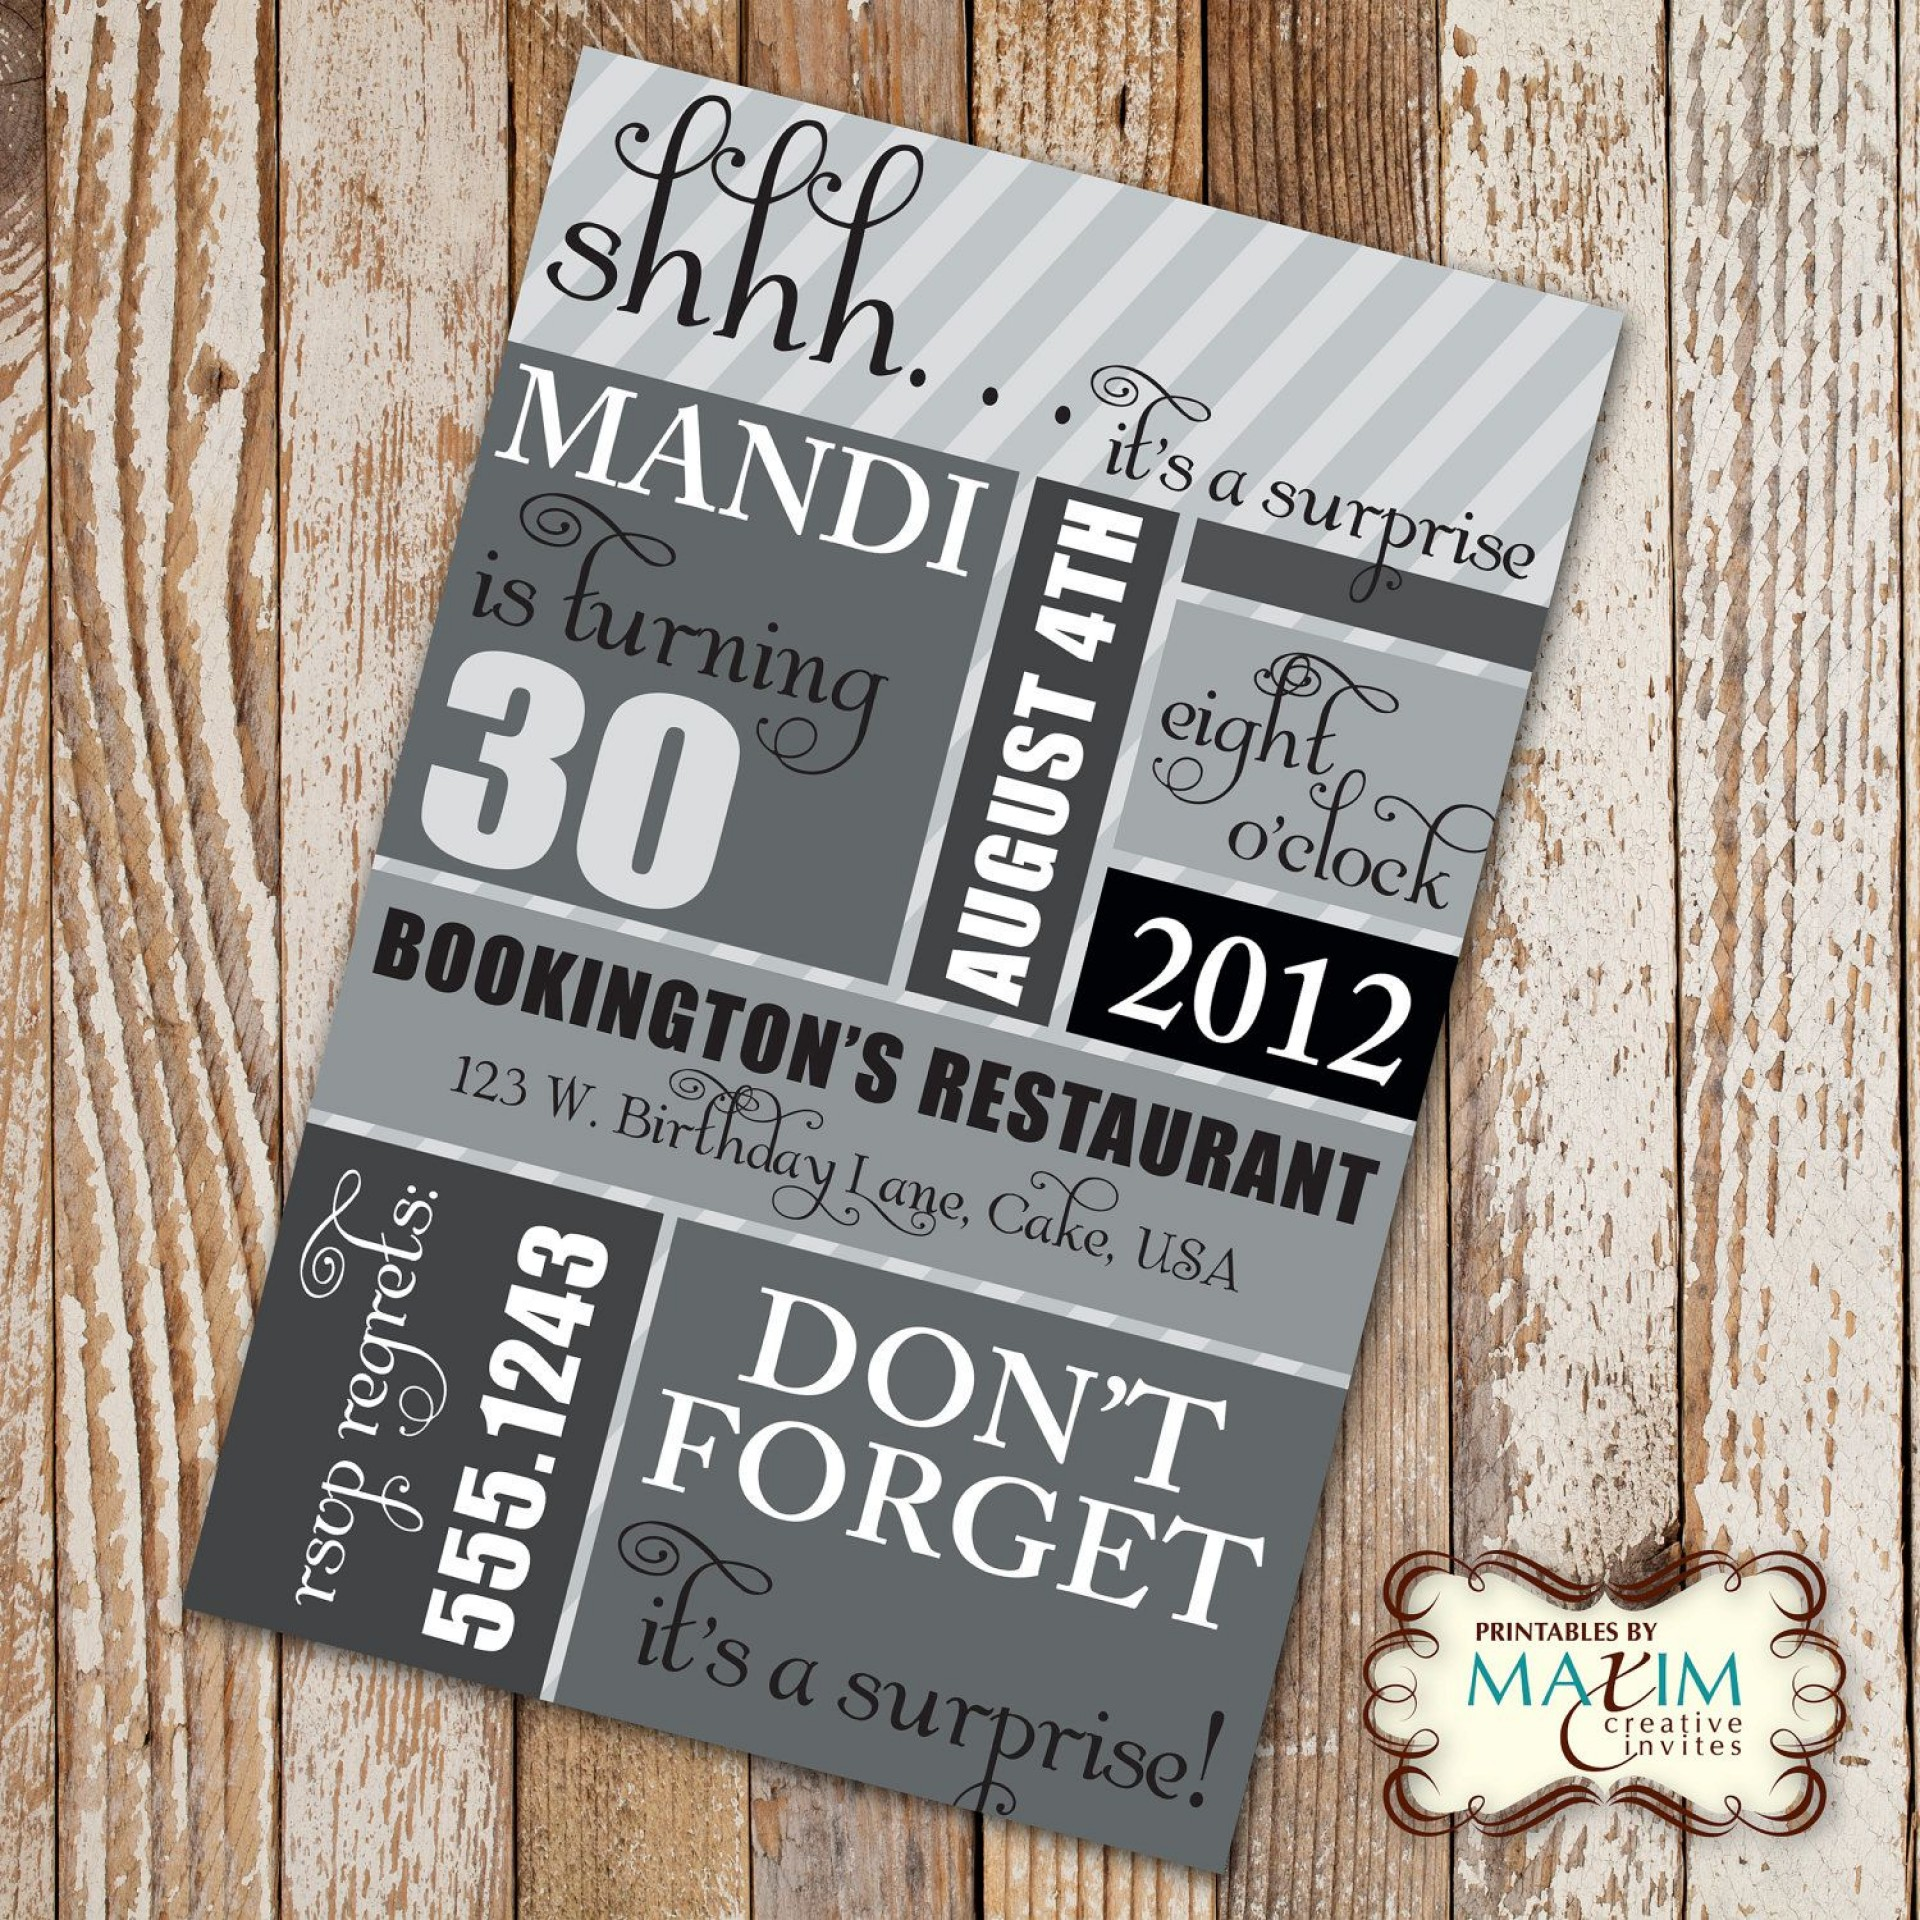 009 Imposing Free Christma Party Invitation Template Uk Picture 1920